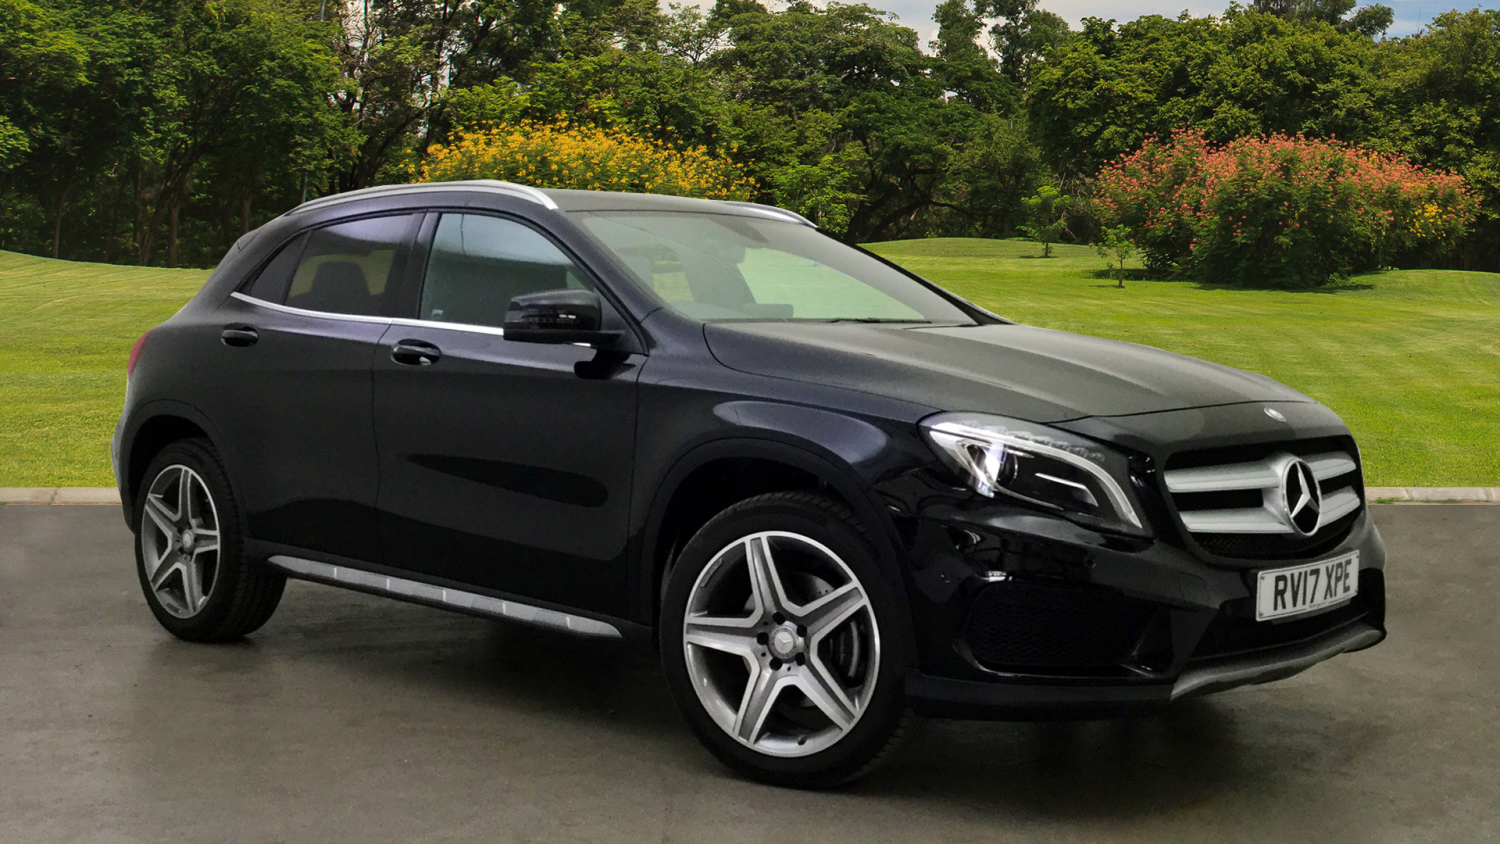 Used and pre owned cars and mercedes benz in oklahoma city for Mercedes benz okc